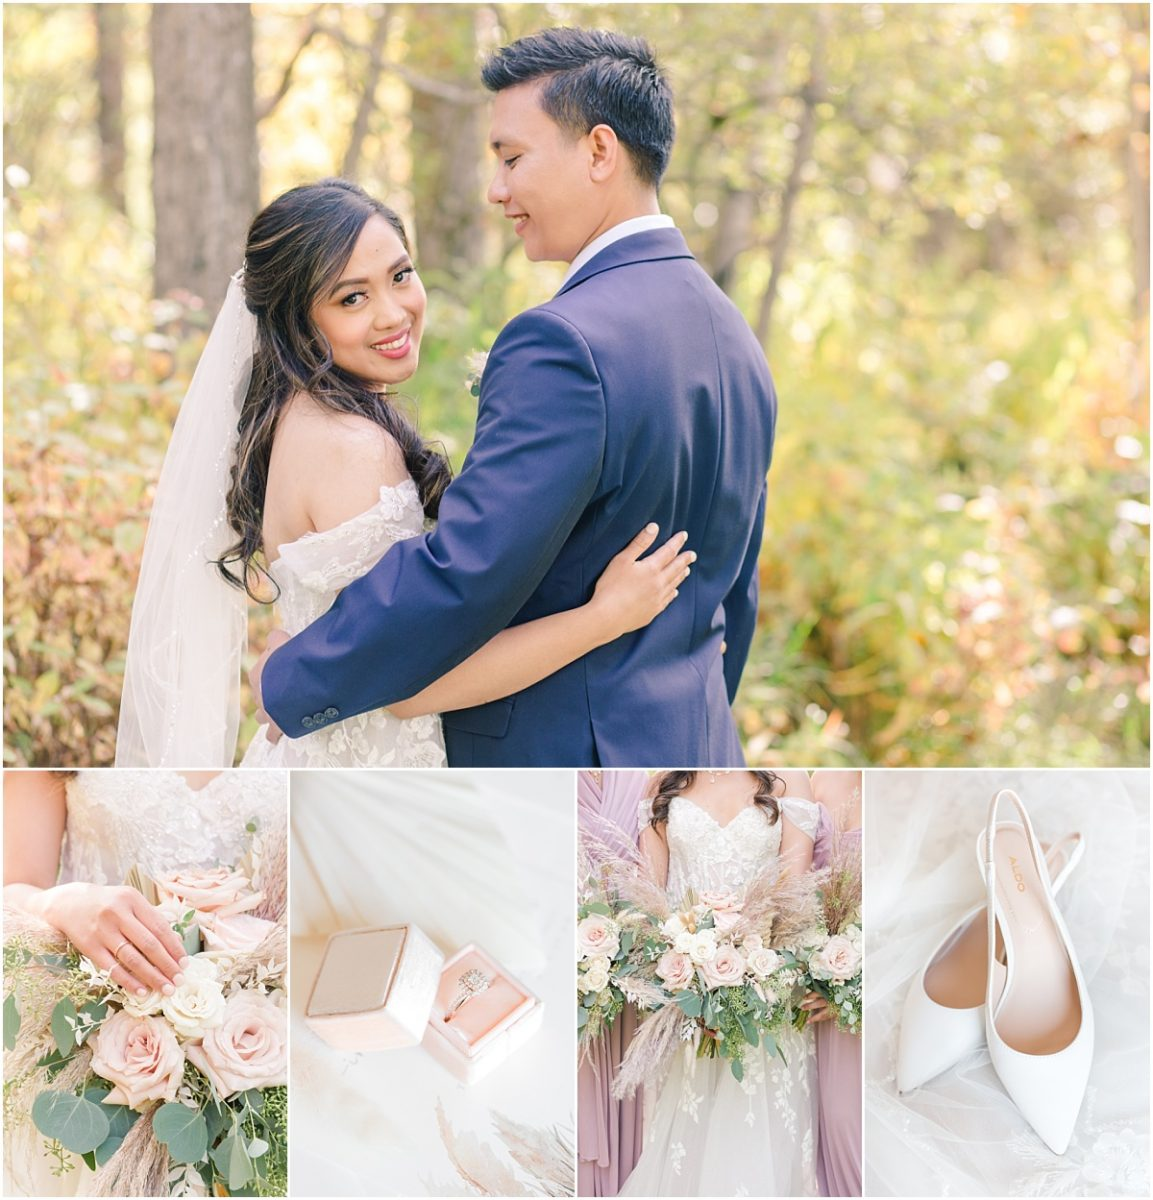 kim and jerrica wedding for the small wedding elopement at wedding venue in grande prairie with pretty fall colors